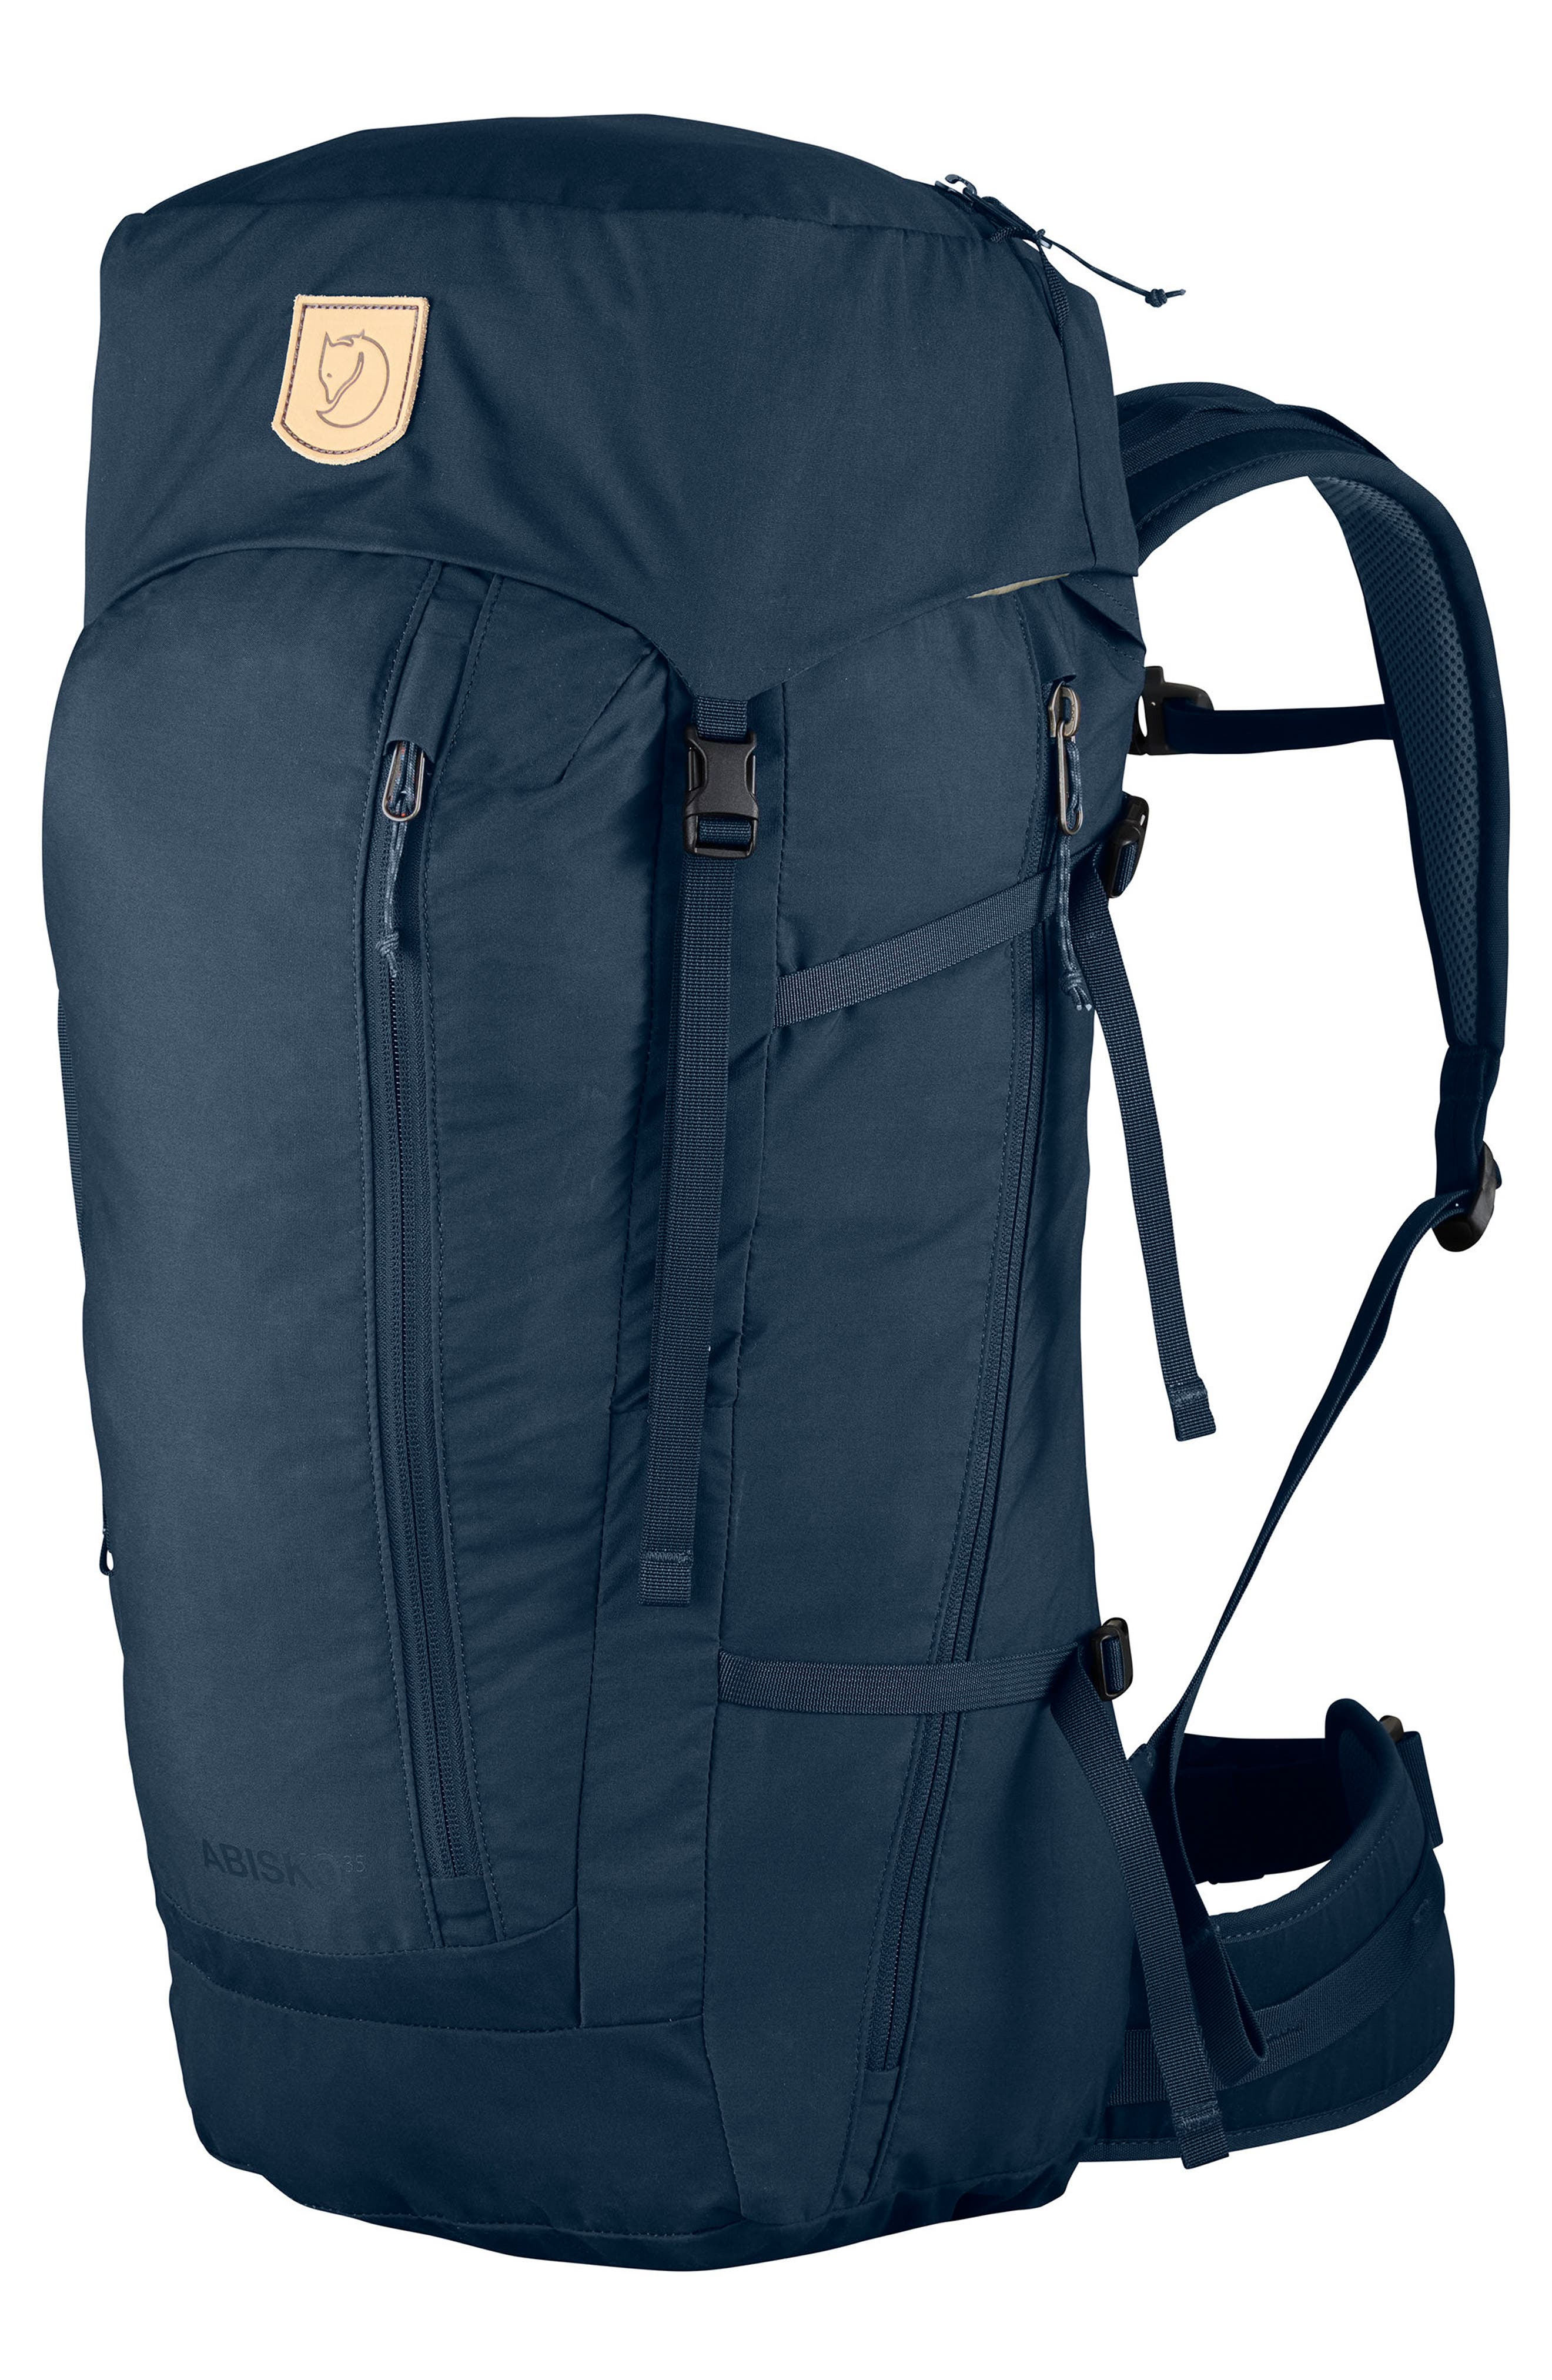 Abisko 35 Hiking Backpack,                             Main thumbnail 1, color,                             NAVY